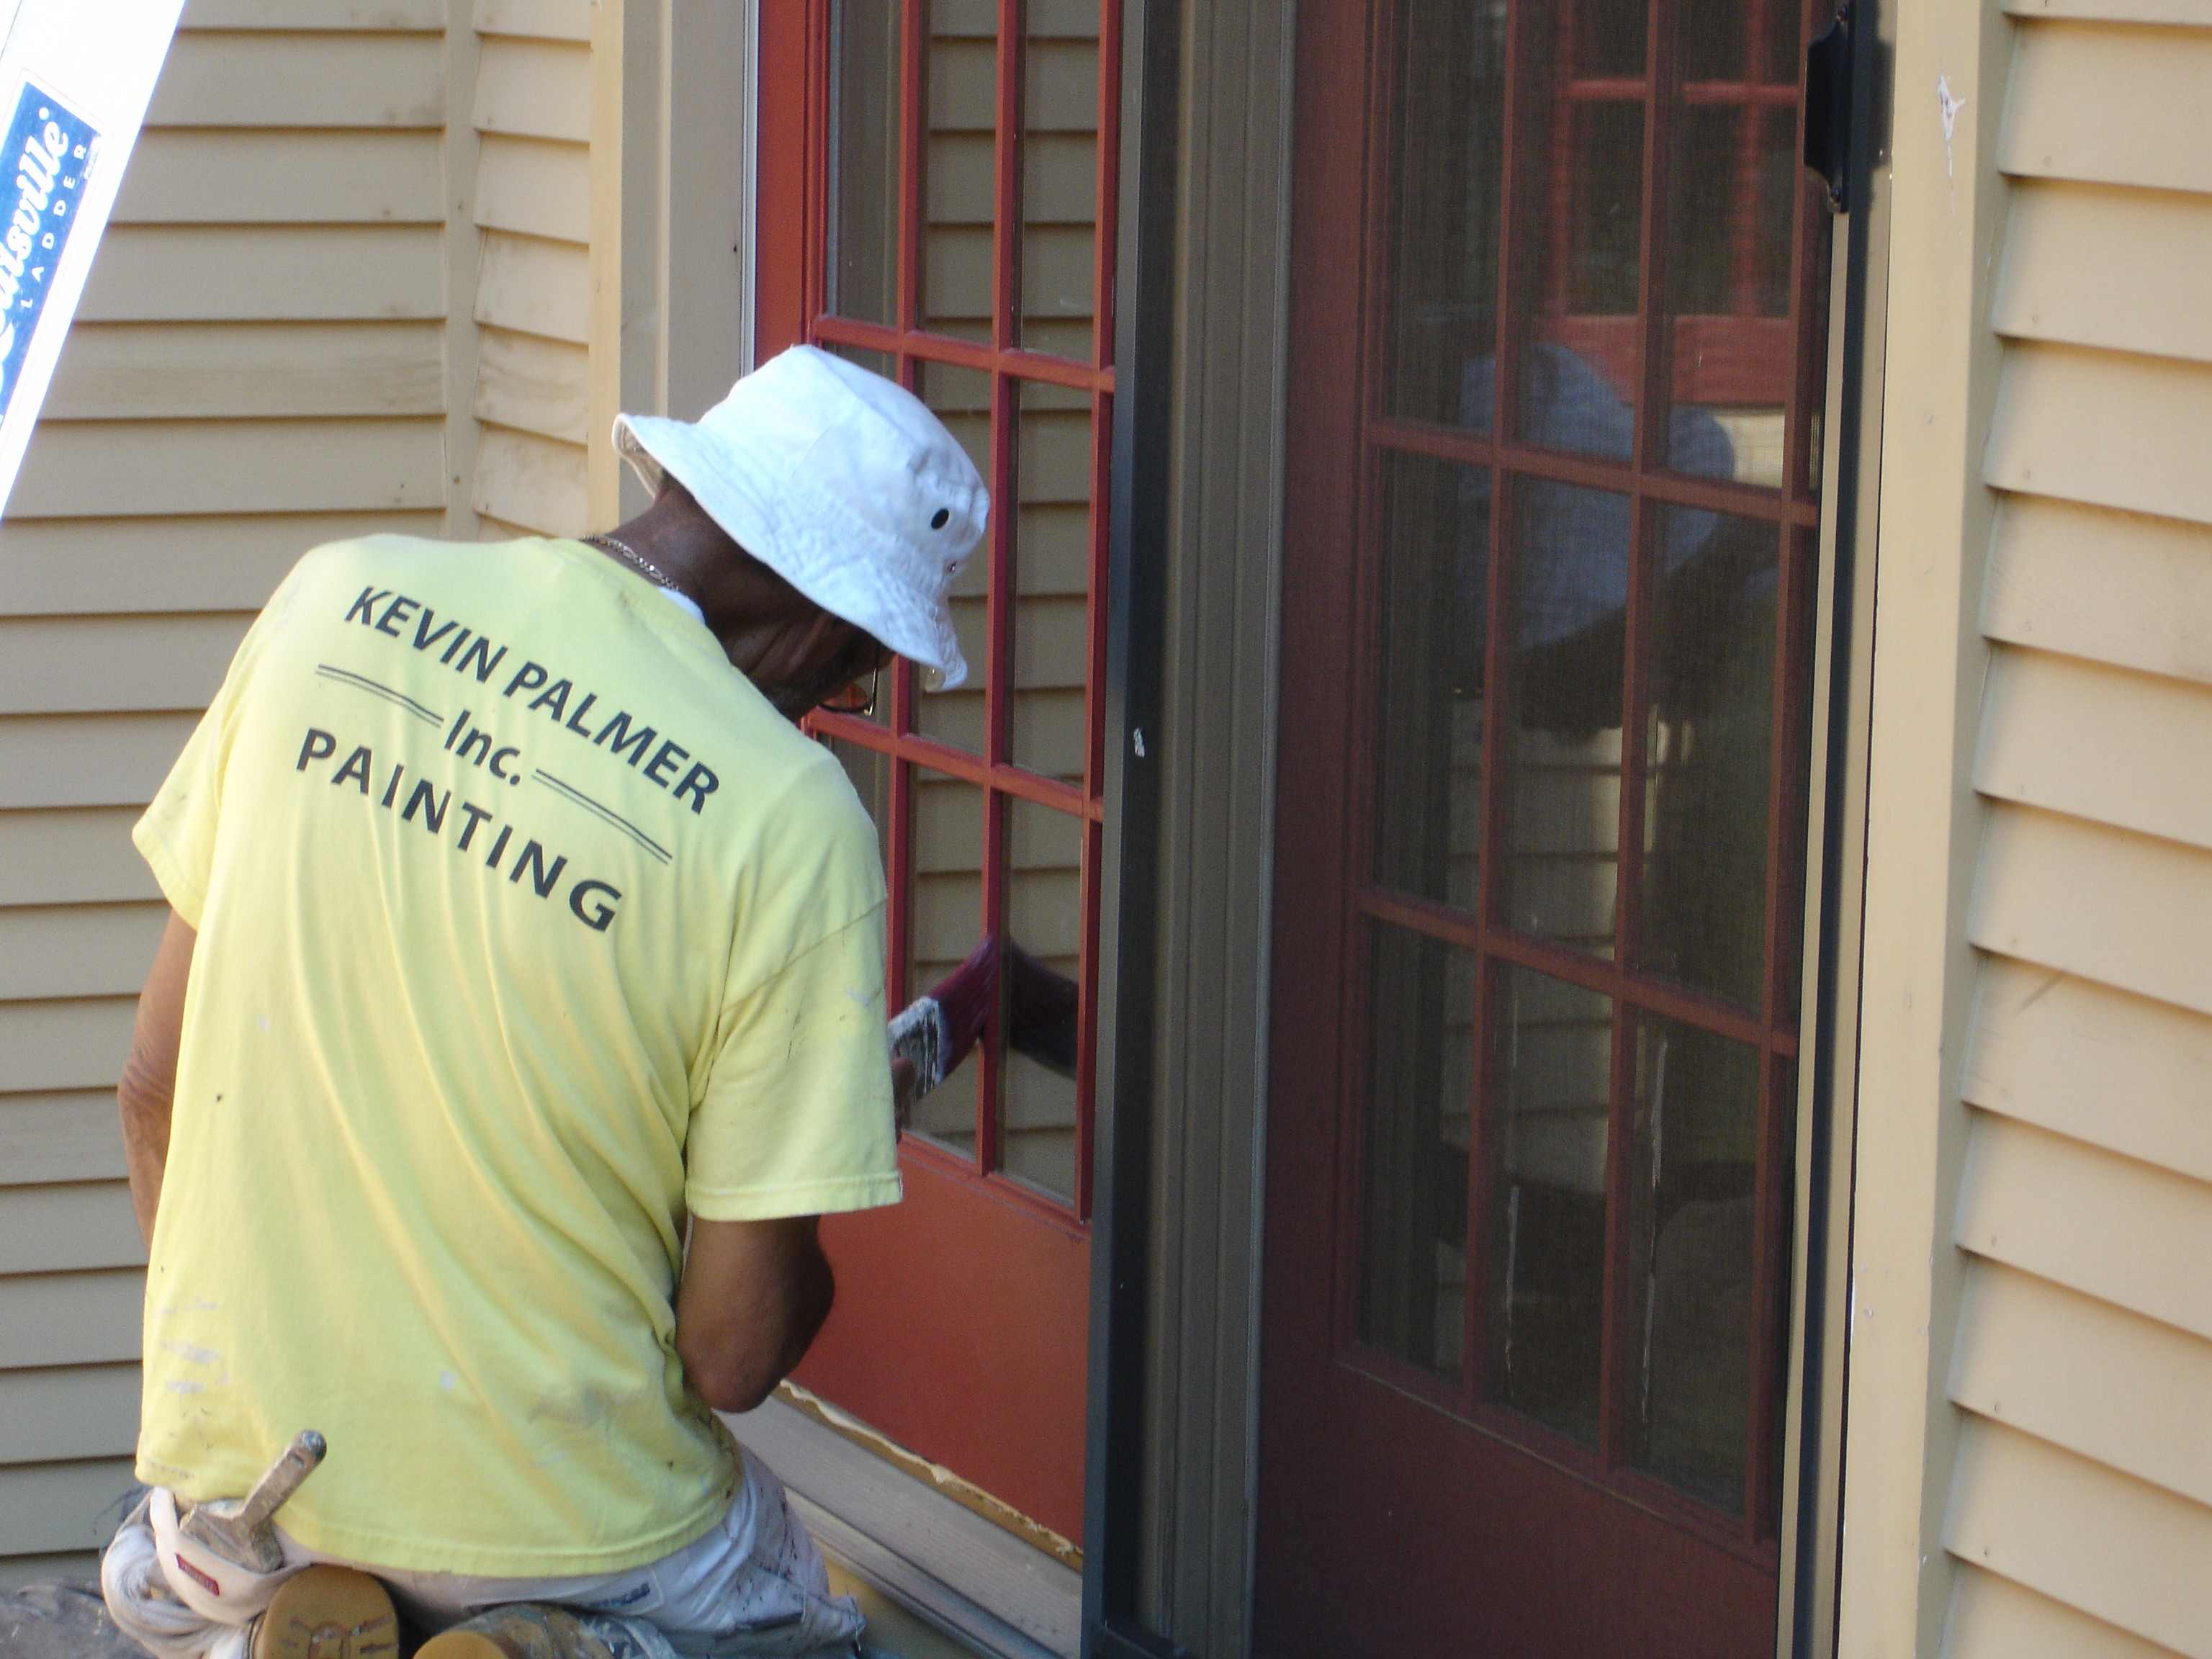 Exterior Painting Archives - Kevin Palmer House Painting